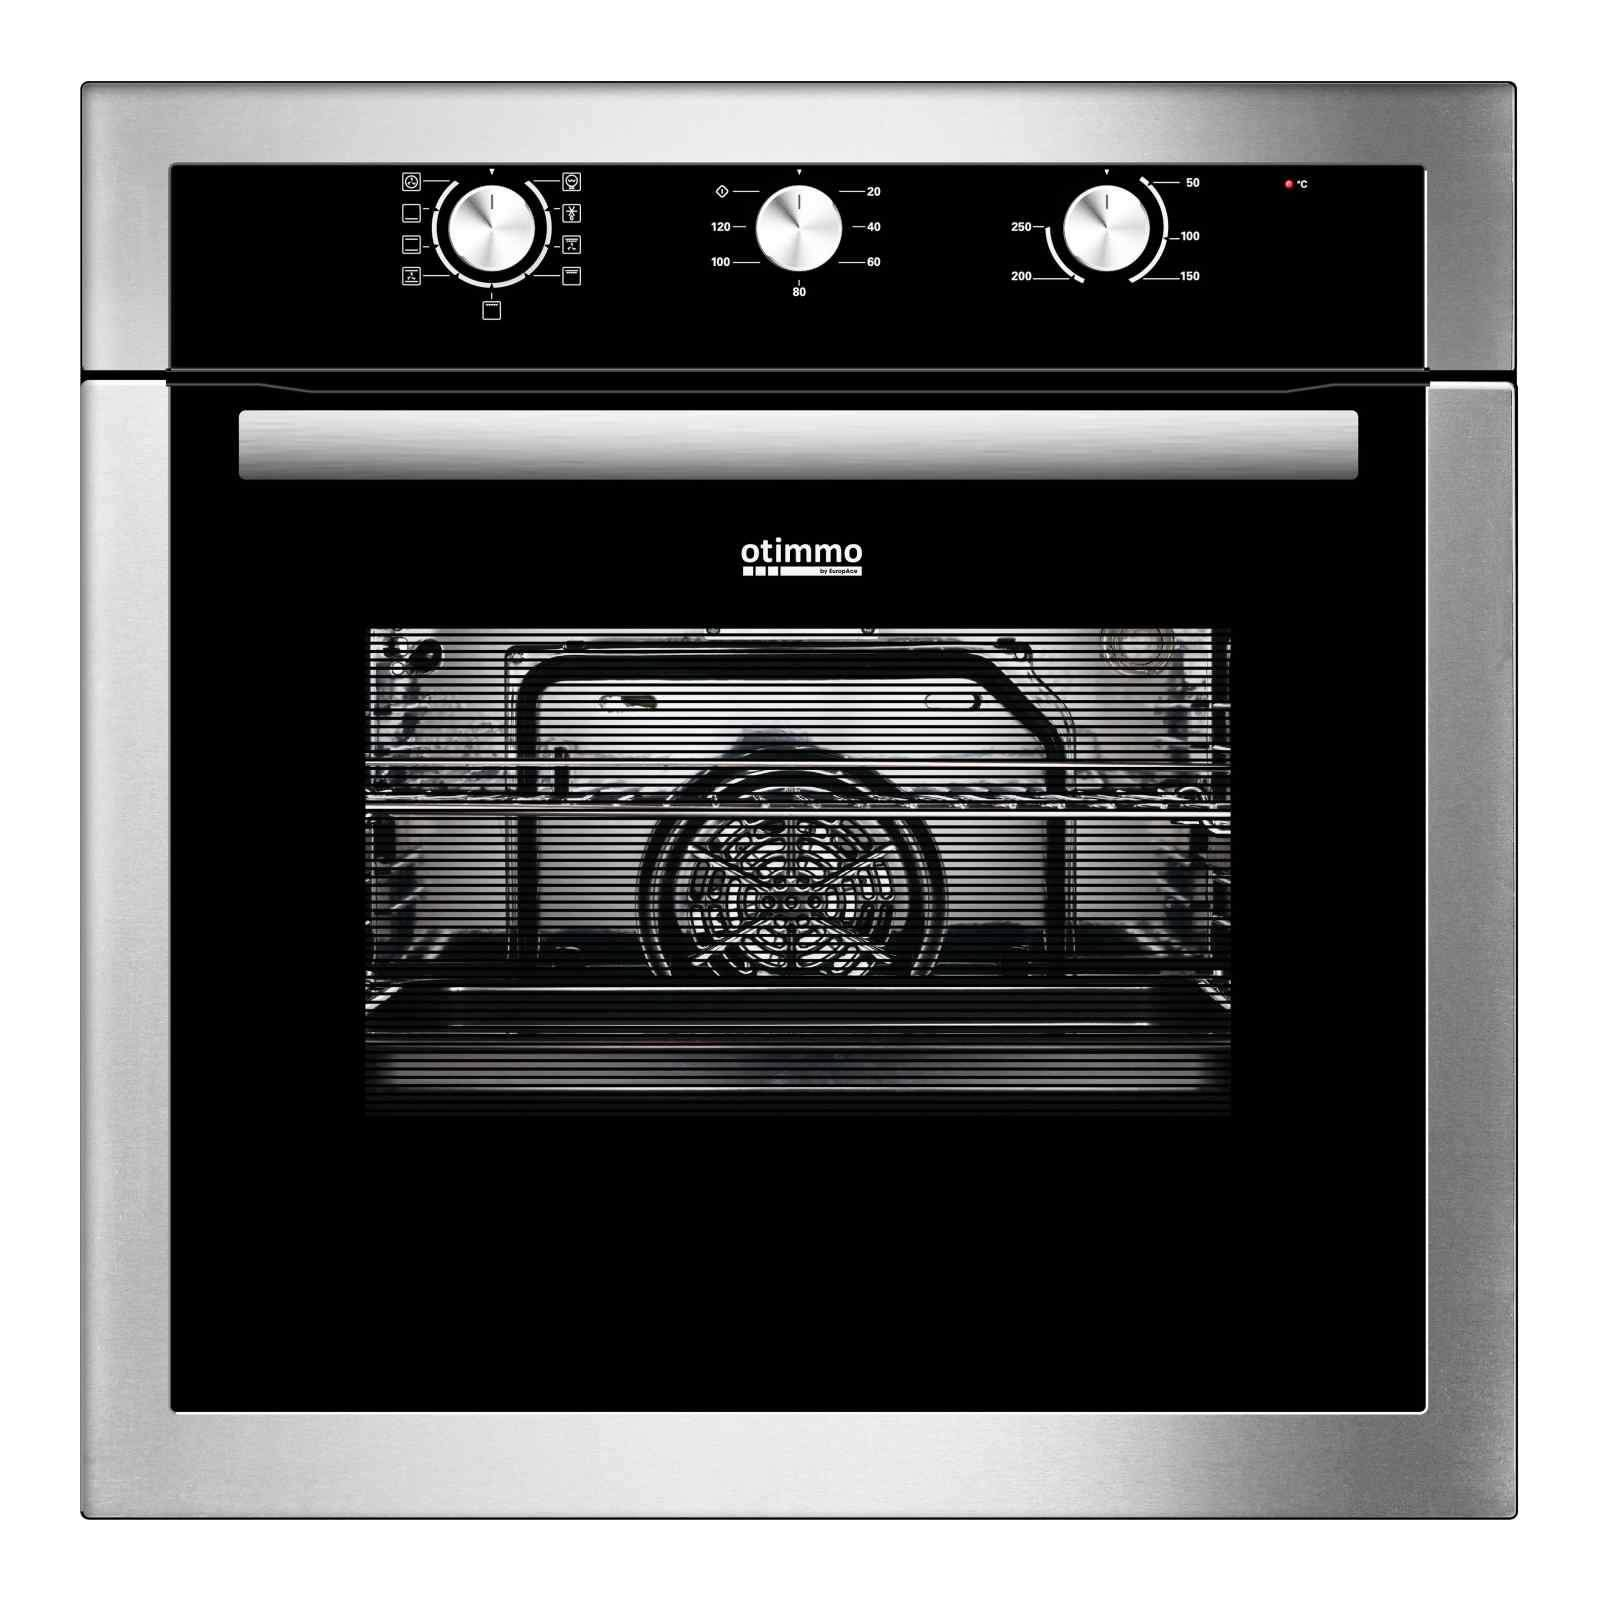 europace ebo3650 built in convection oven (65l) (exclude installation)